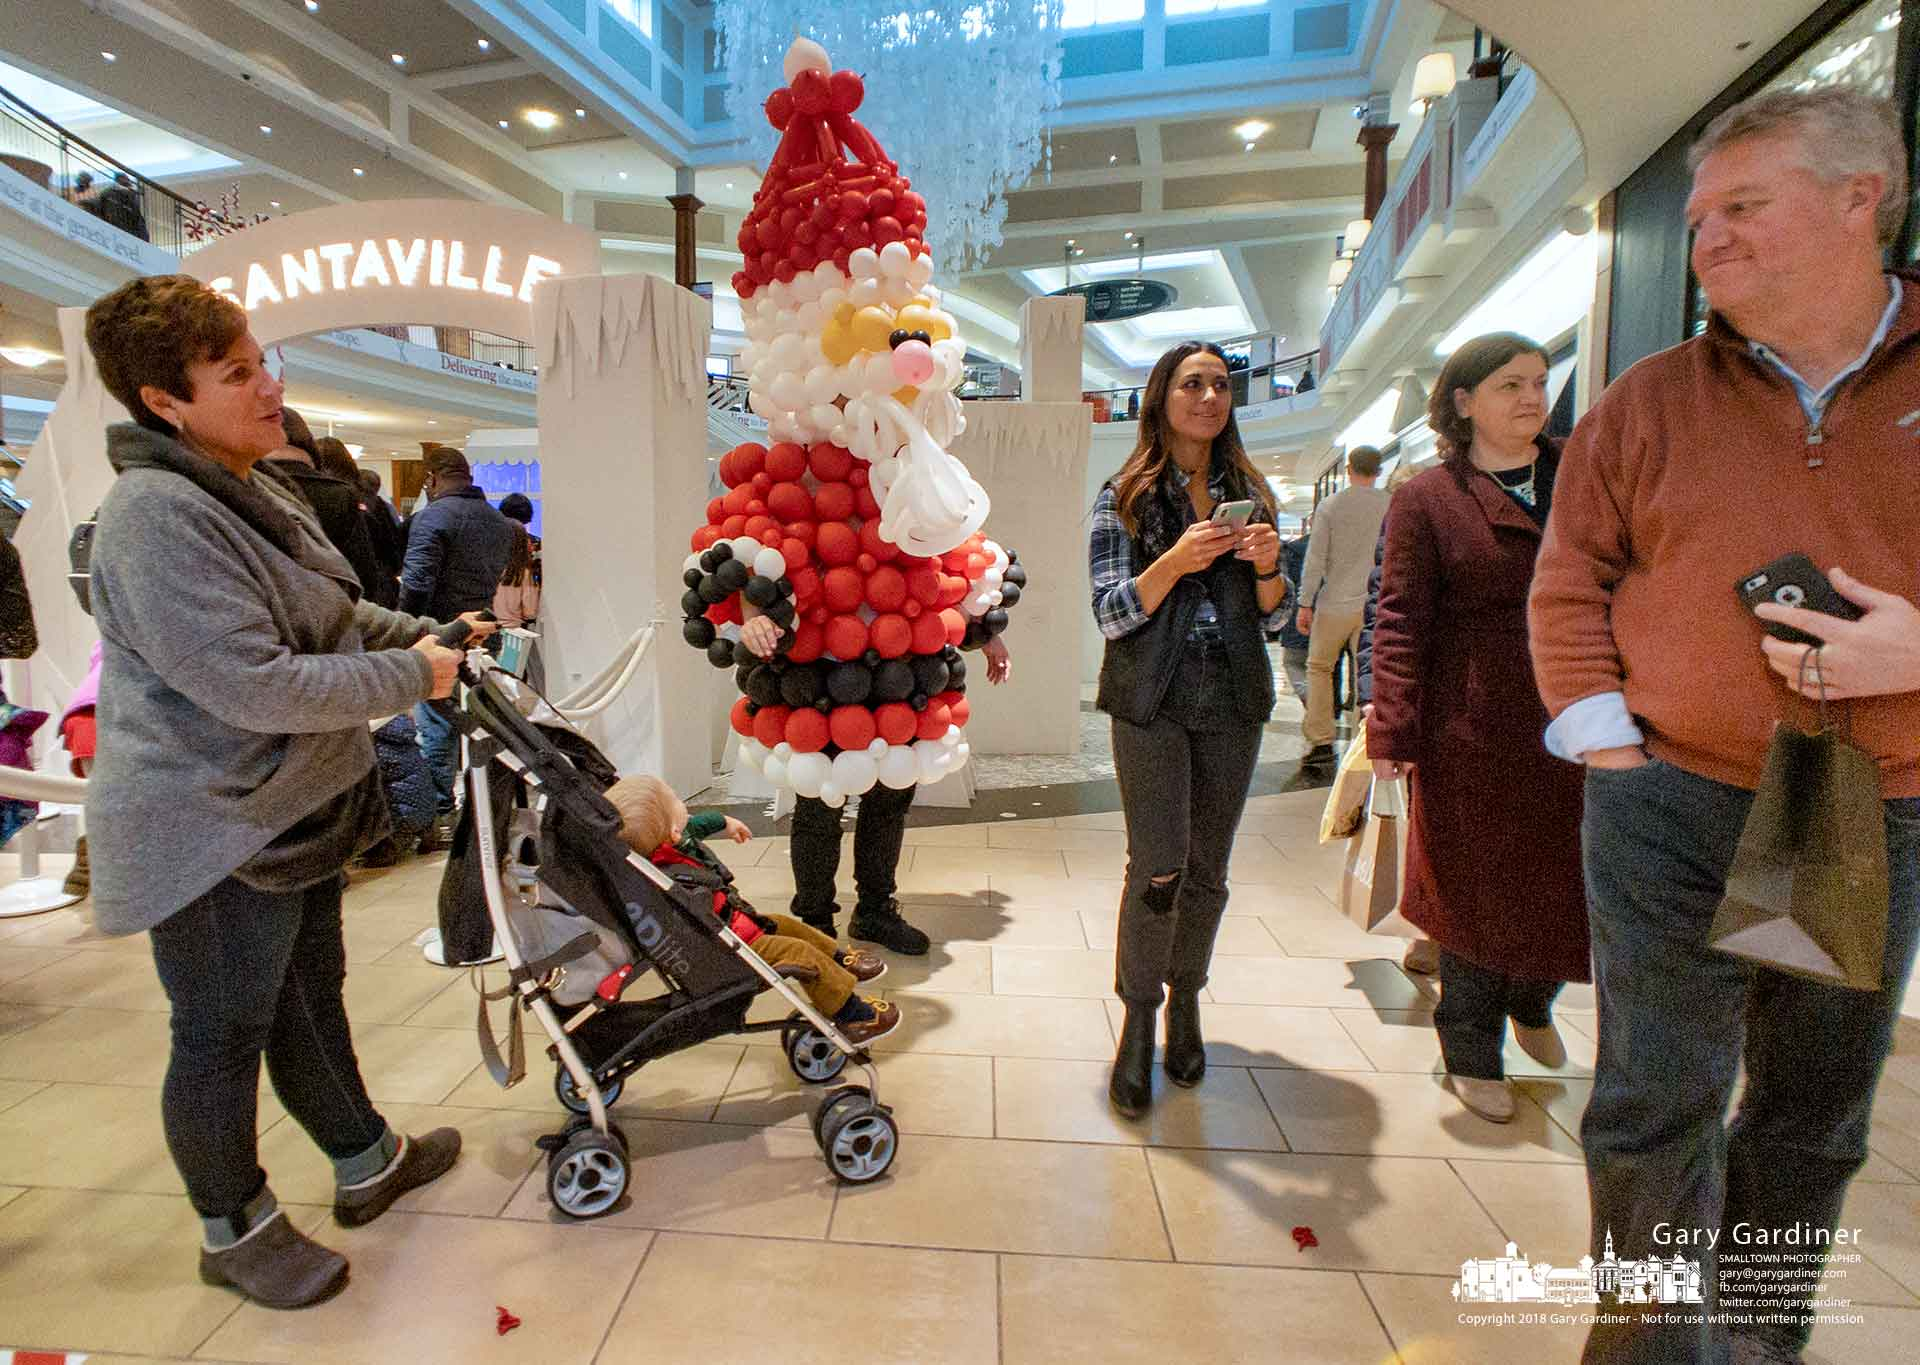 A Santa draped in a balloon sculpture stands ready to receive passers-by at the entrance to the booth for photos with Santa at Polaris Mall. My Final Photo for Dec. 23, 2018.